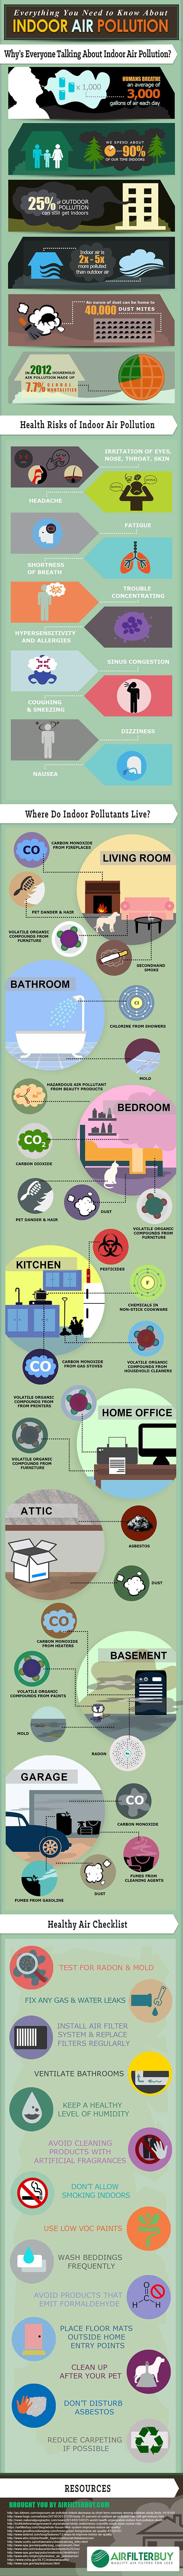 INFOGRAPHIC: The dangers of indoor pollution and how to deal with it